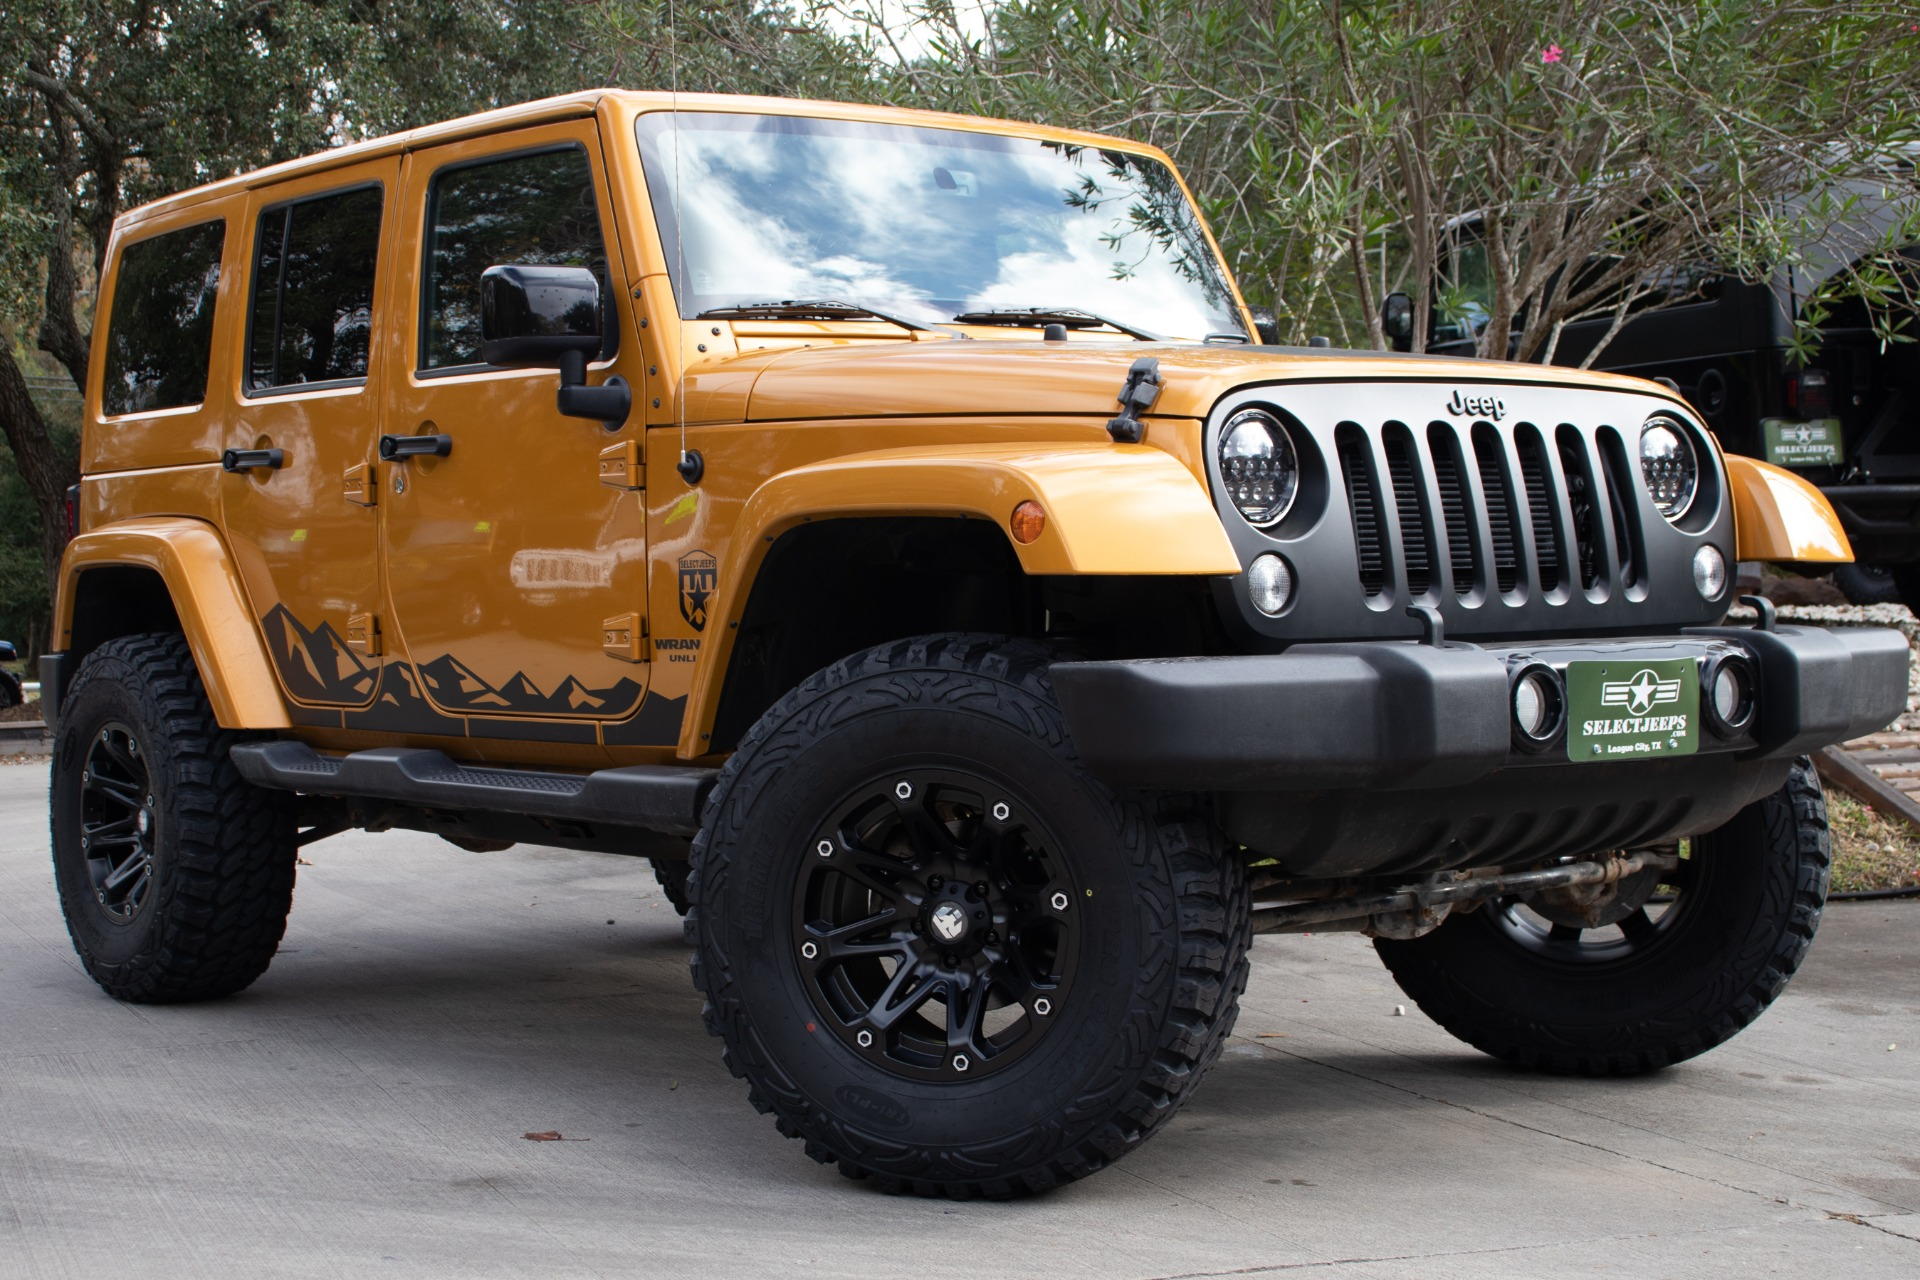 Used 2014 Jeep Wrangler Unlimited Altitude Edition For Sale 28 995 Select Jeeps Inc Stock 261789